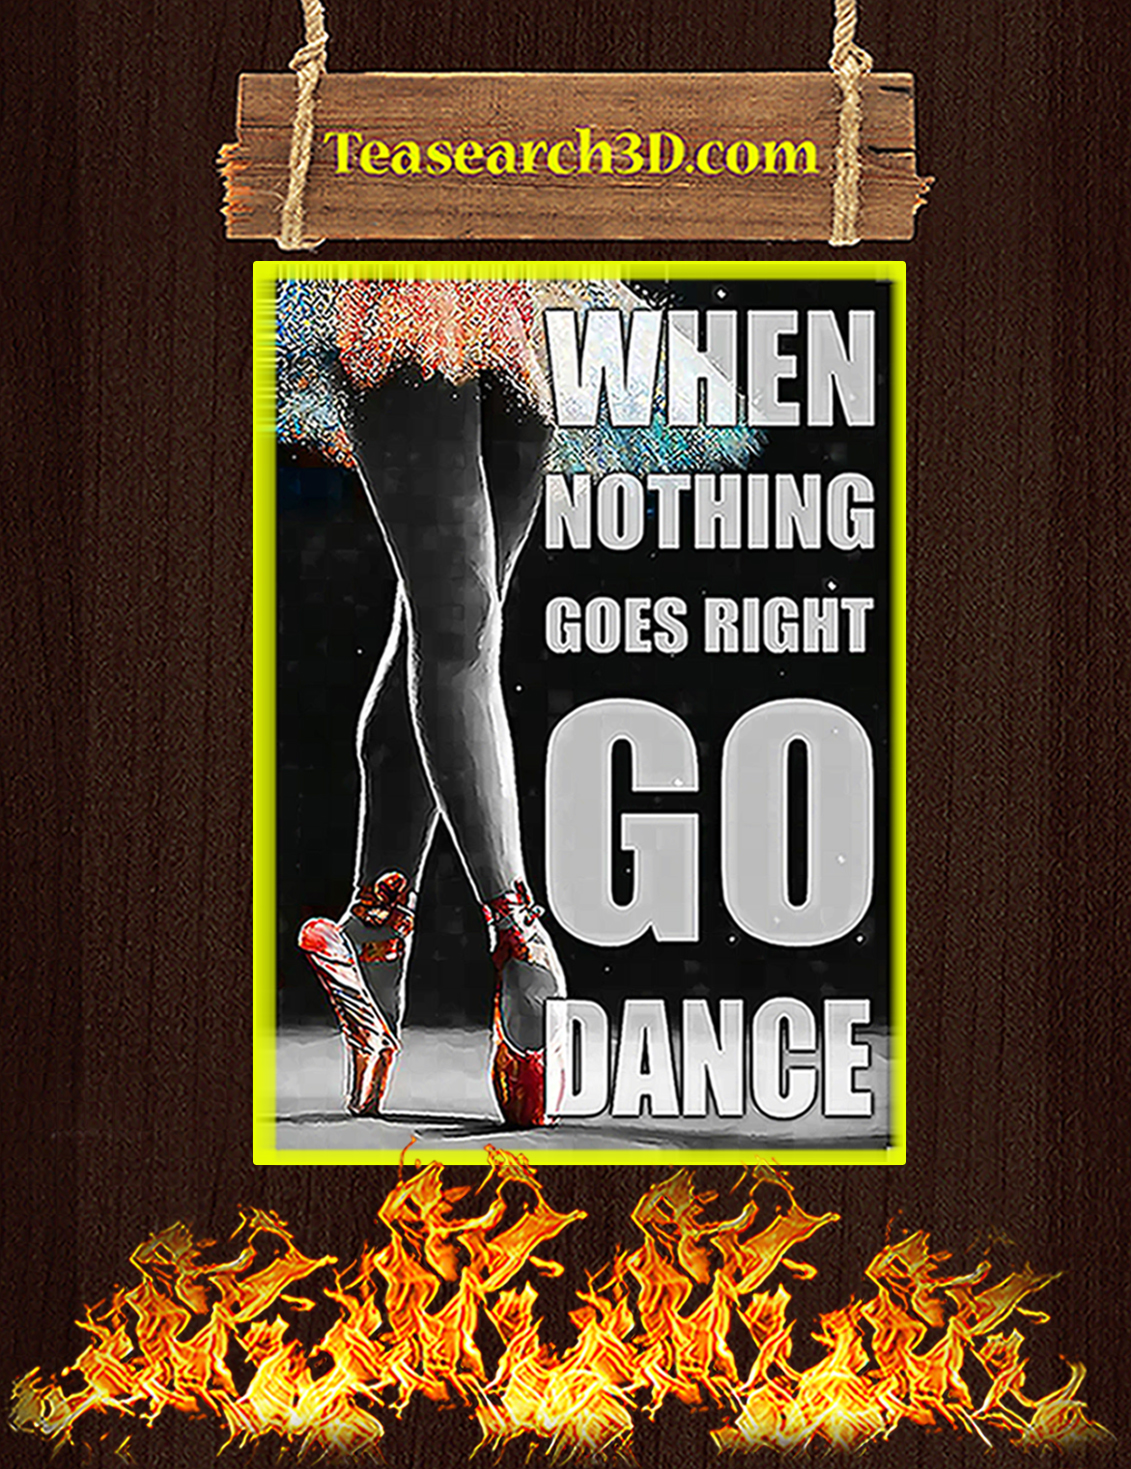 Ballet when nothing goes right go dance poster A3